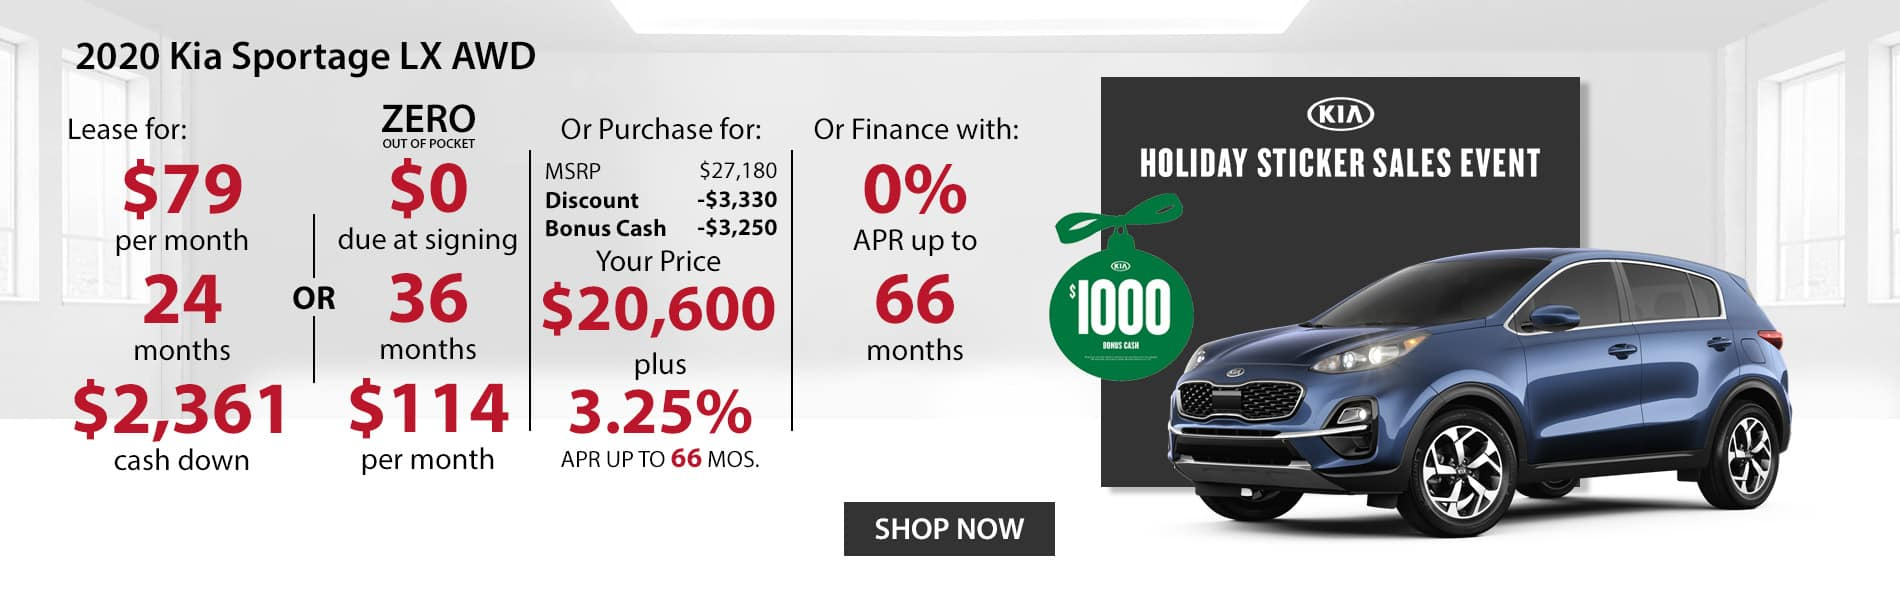 Special offer on 2020 Kia Sportage LX AWD Lease for $79 with $2,361 down or Purchase for $20,600 with 3.25% APR or get 0% APR for 66 months.